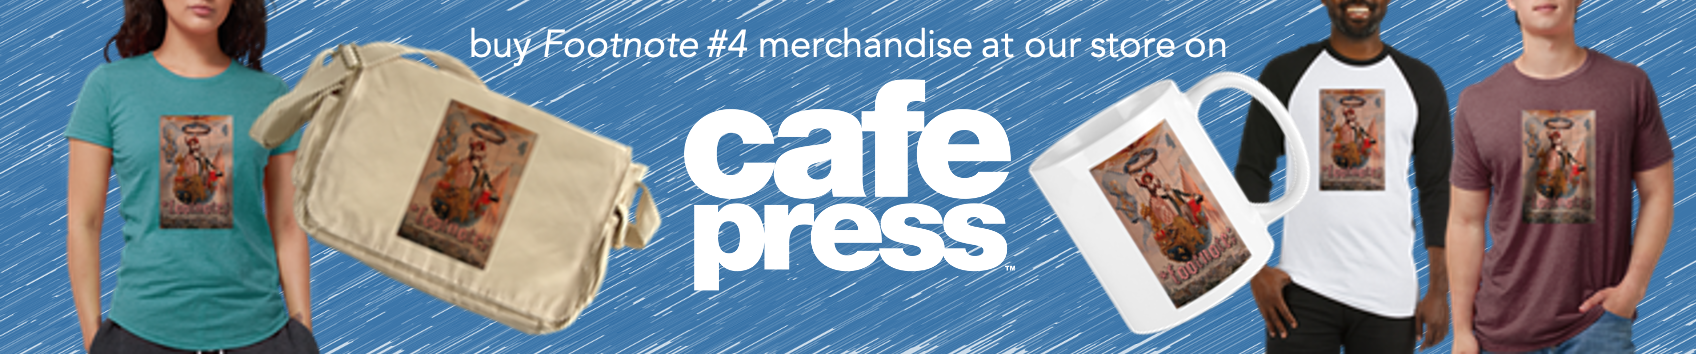 Buy Footnote 4 merchandise at Cafe Press